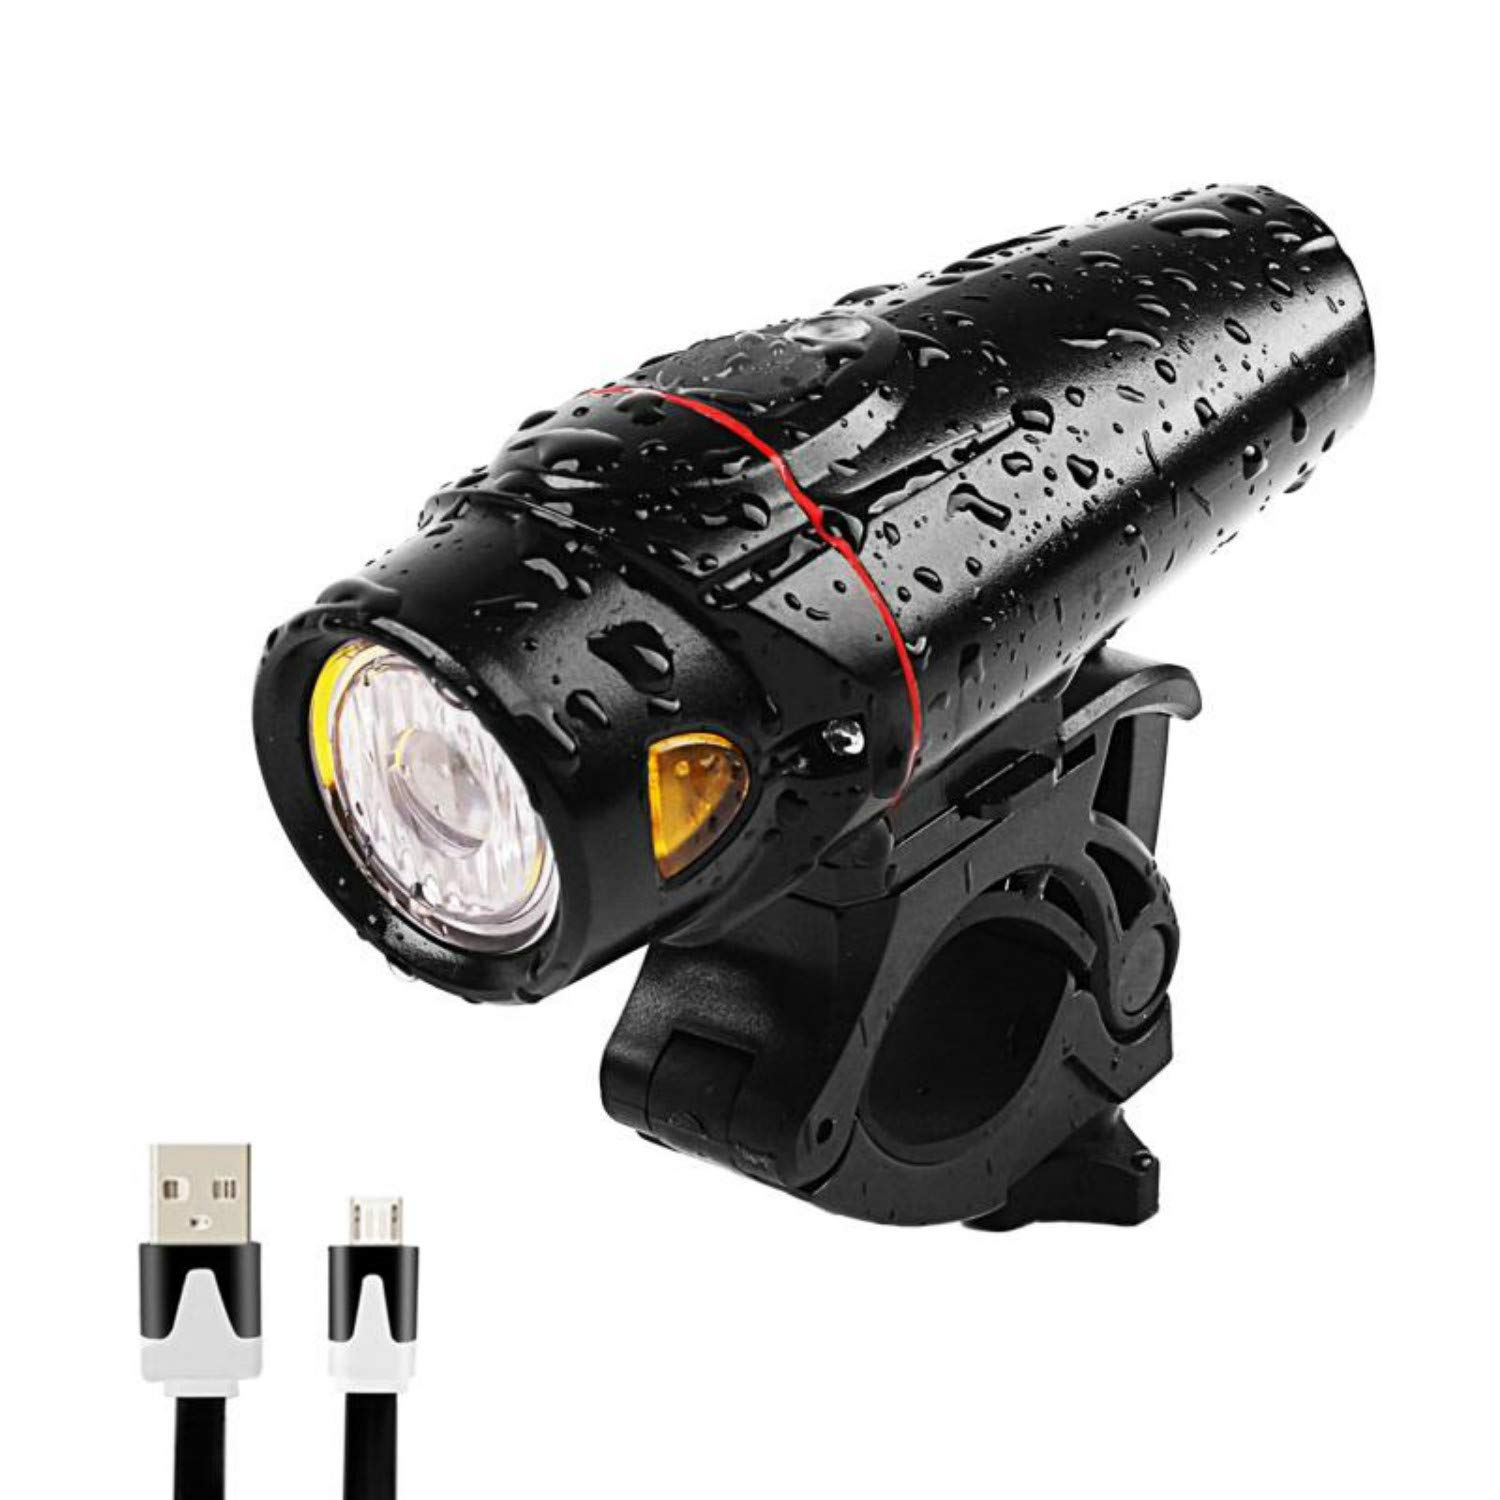 Yuwumin Smart Bike Light,USB Rechargeable Bicycle LED Lights,Super Bright Headlight Water Resistant,Easy Install and Quick Release for Commuter Road Cycling Safety Flashlight